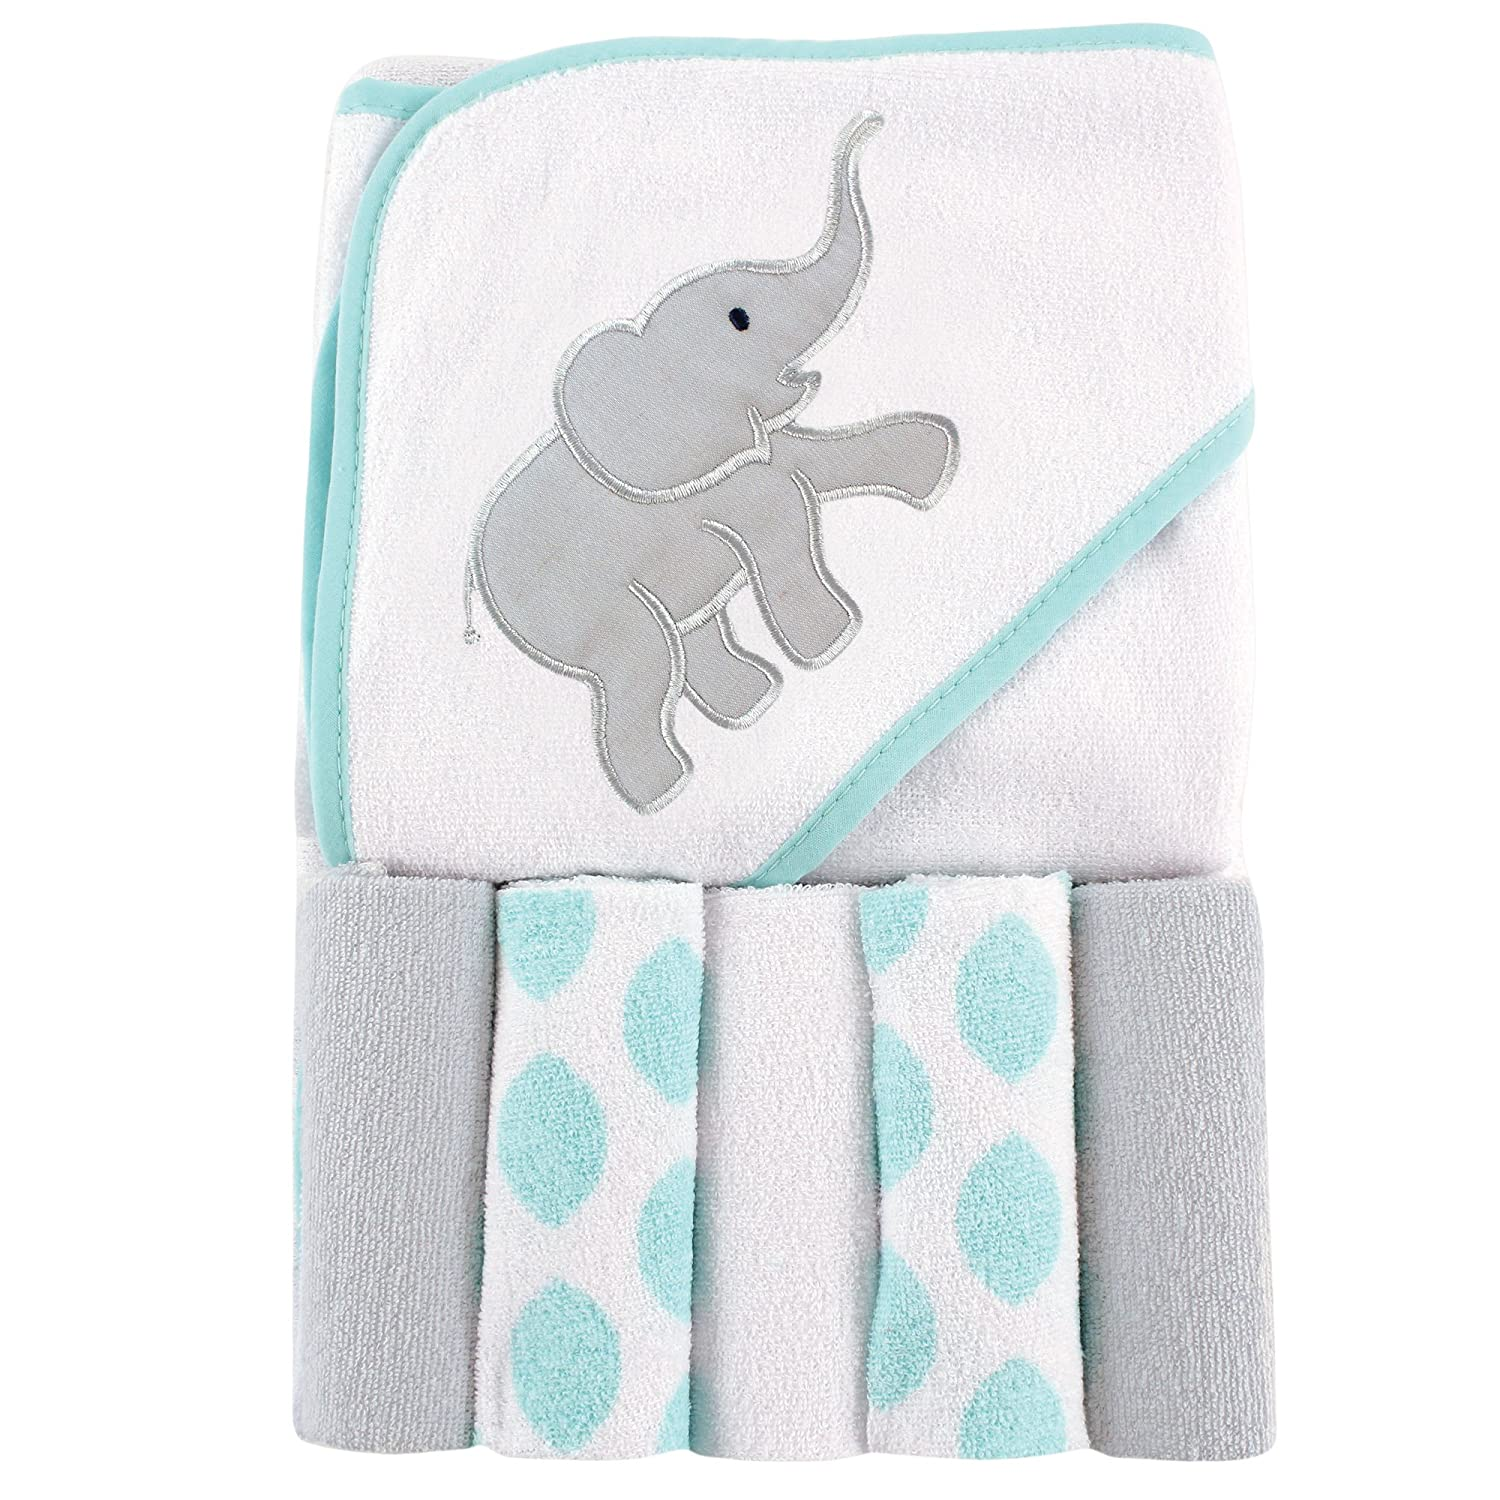 Luvable Friends Hooded Towel and 5 Washcloths, Ikat Elephant 05251_IkatElephant